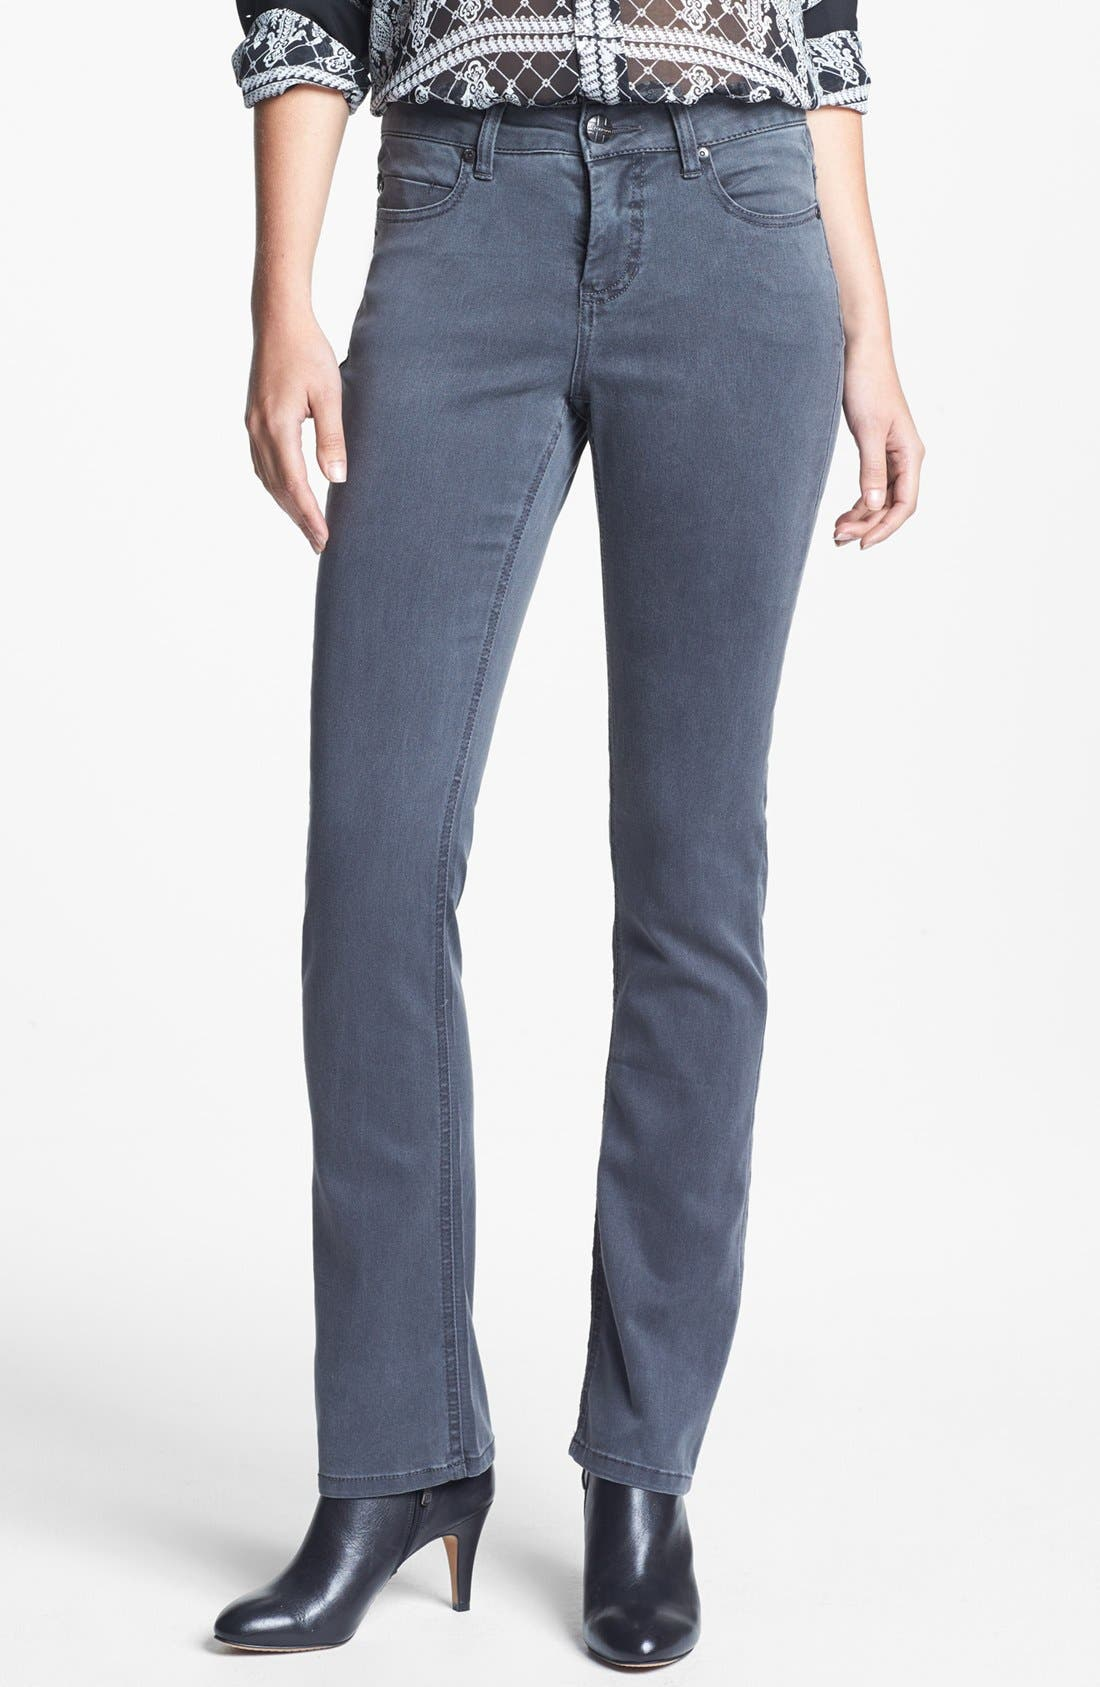 Alternate Image 1 Selected - Liverpool Jeans Company 'Sadie' Straight Leg Supersoft Stretch Jeans (Regular & Petite)